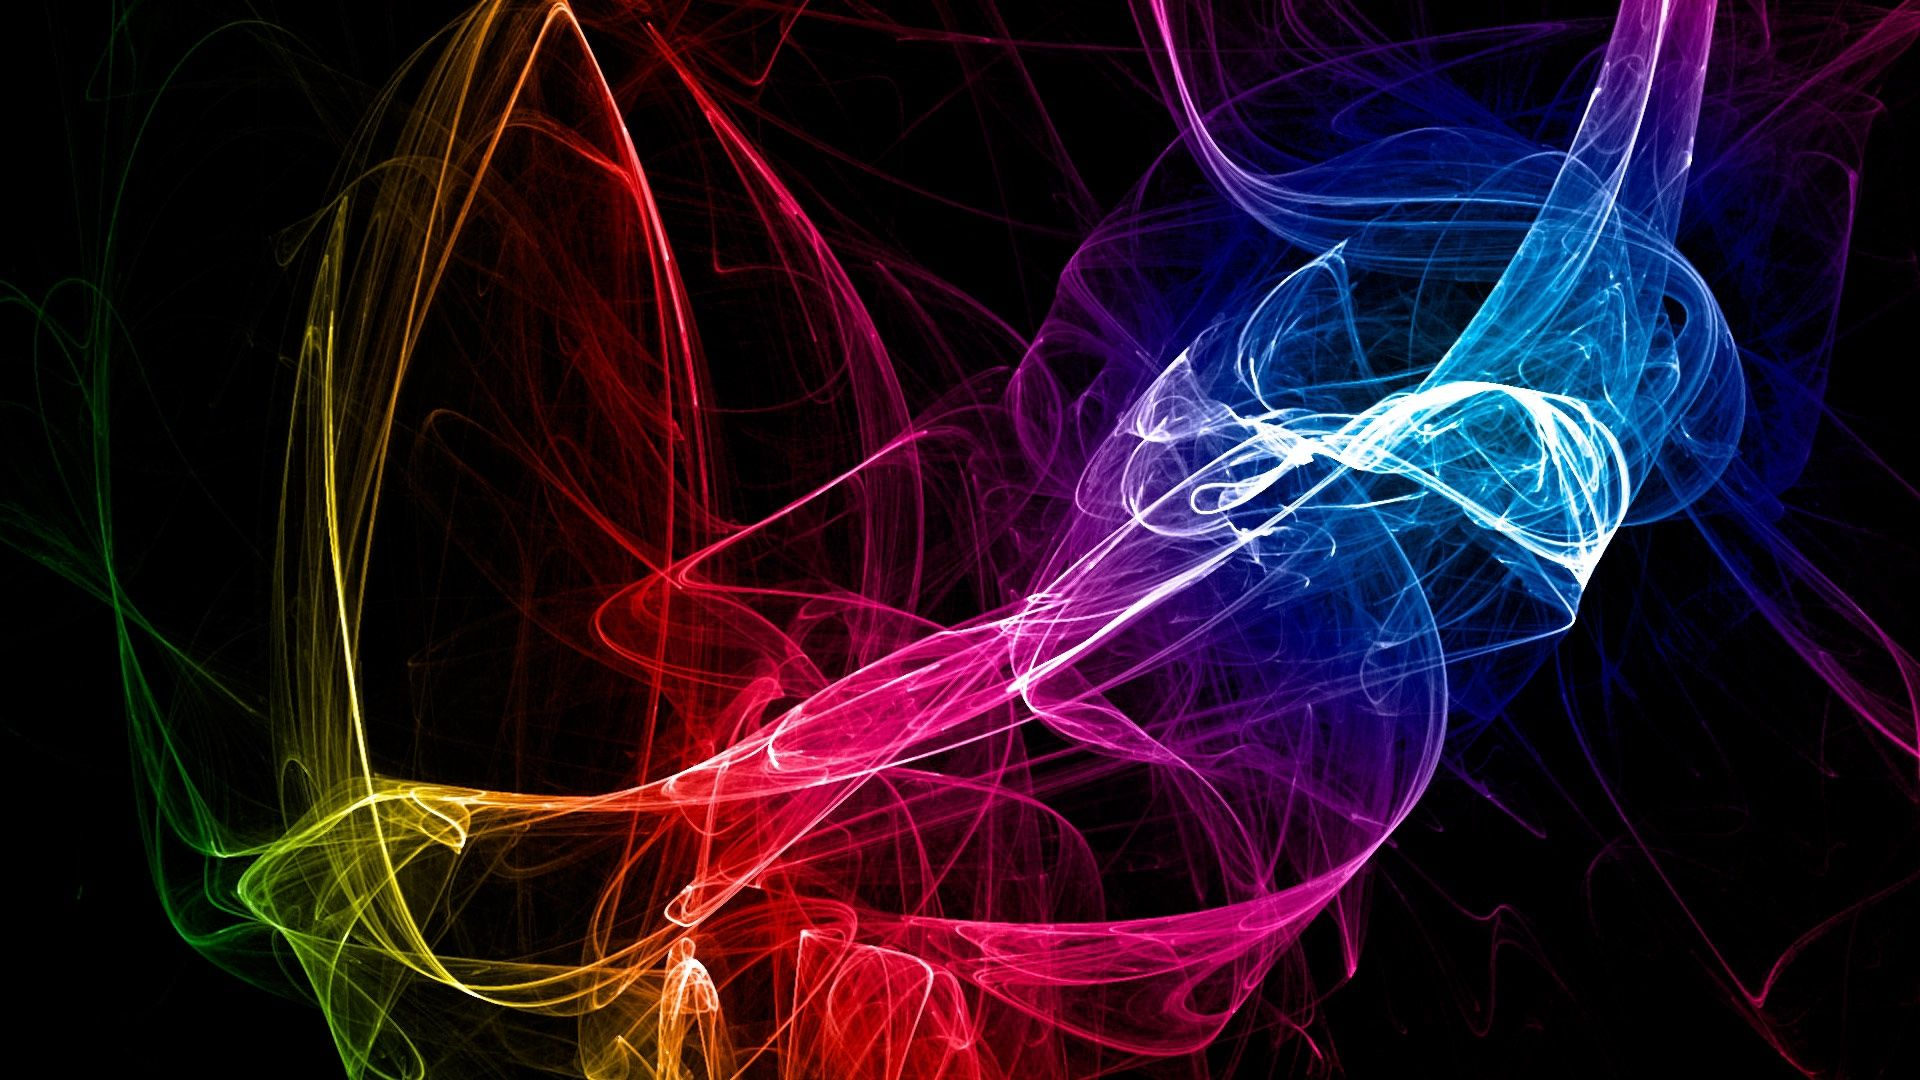 Neon Pictures, Abstraction 1080Х1920 Vertical